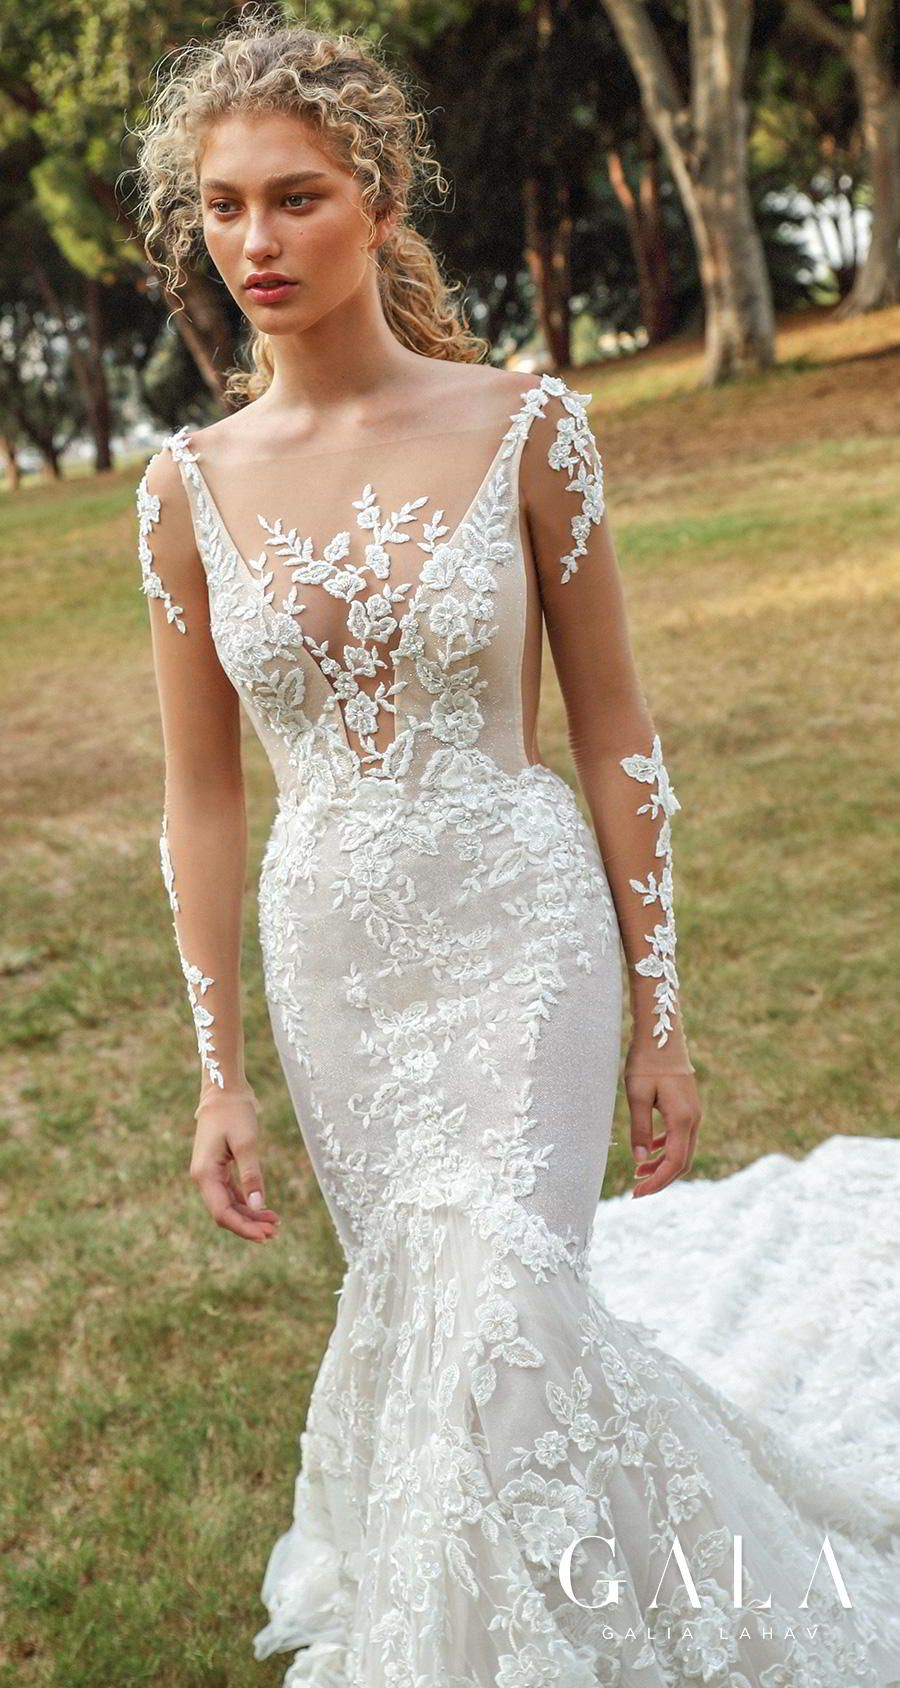 These 13 Looks Prove That Fairytale Wedding Dresses Can Also Be Glamorous Featuring Galia Lahav Gala Collection No Vii Wedding Inspirasi Backless Mermaid Wedding Dresses Wedding Dresses Backless Wedding Dress [ 1688 x 900 Pixel ]